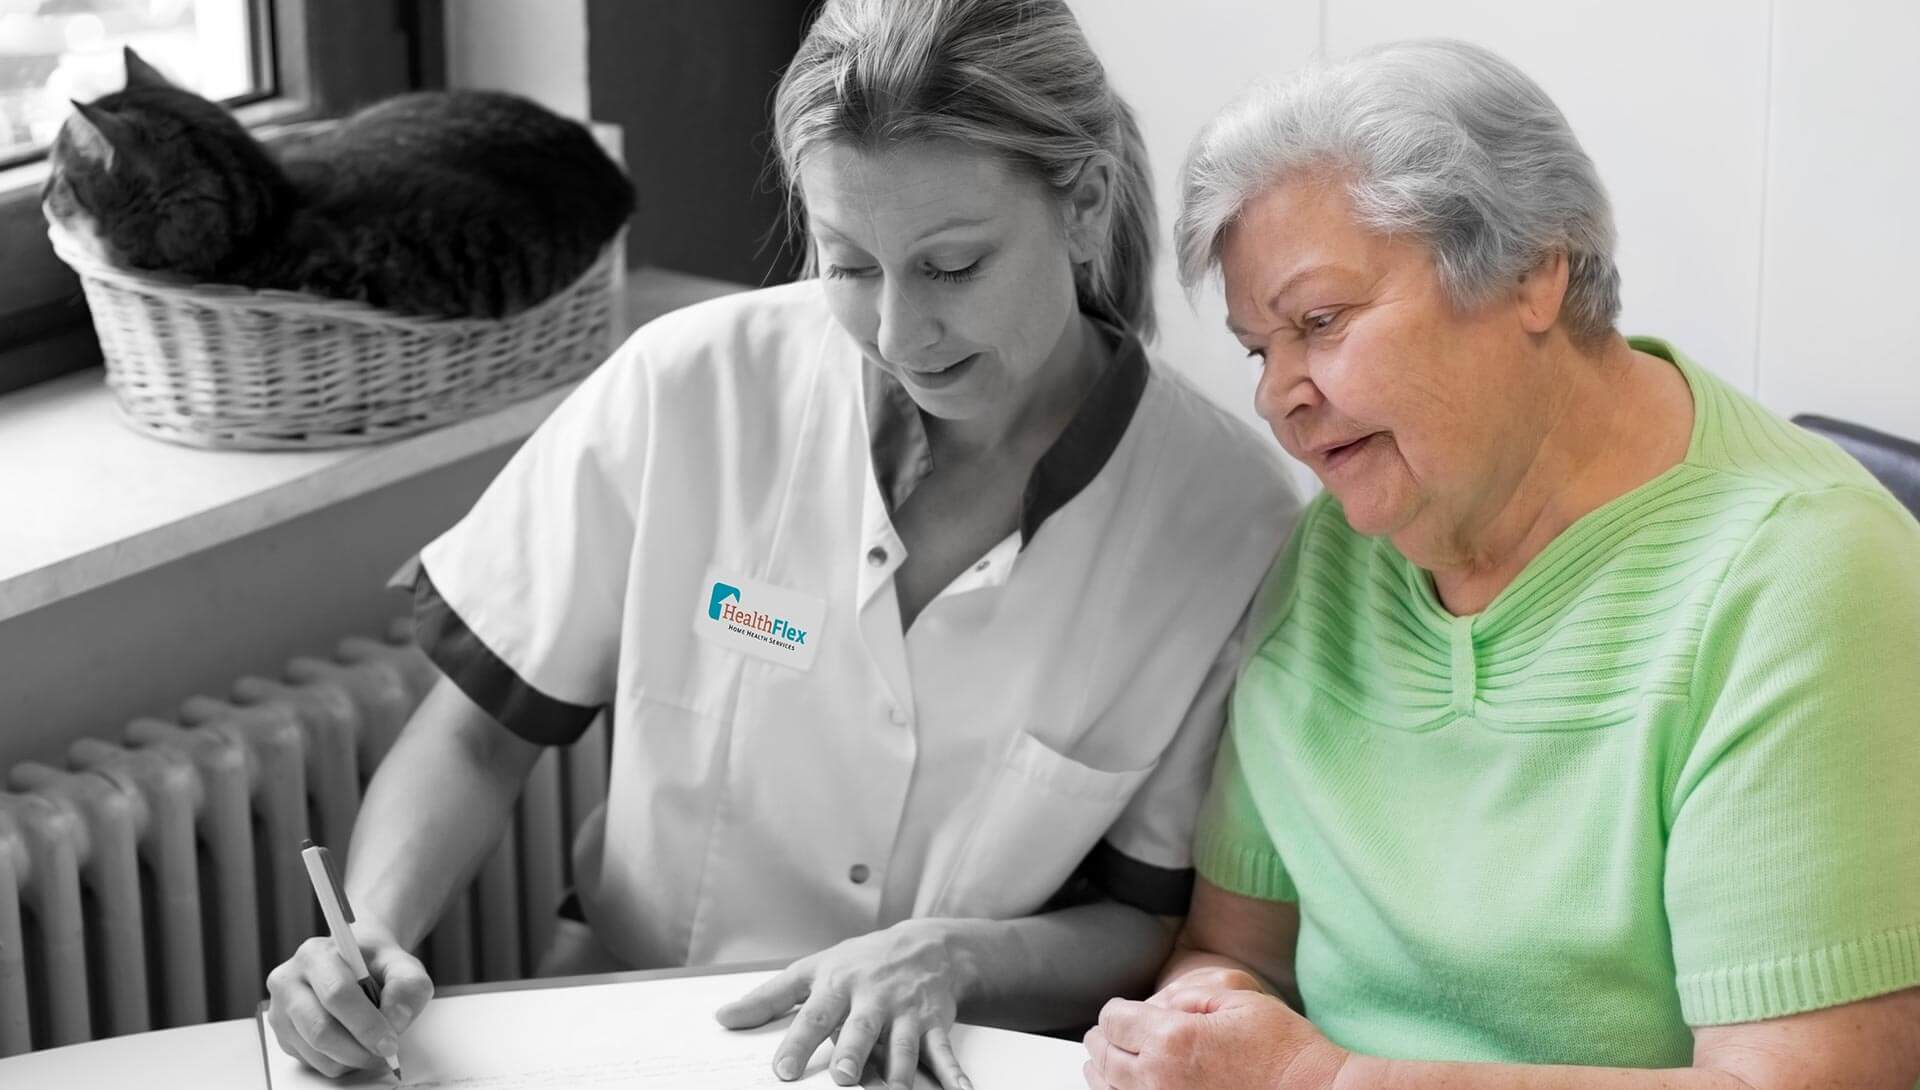 grief patient and health care providers Grief support all ssm health at home – hospice patients and families are provided spiritual and grief support throughout the hospice period bereavement care continues to be provided to loved ones for an additional 13 months after the patient's death.